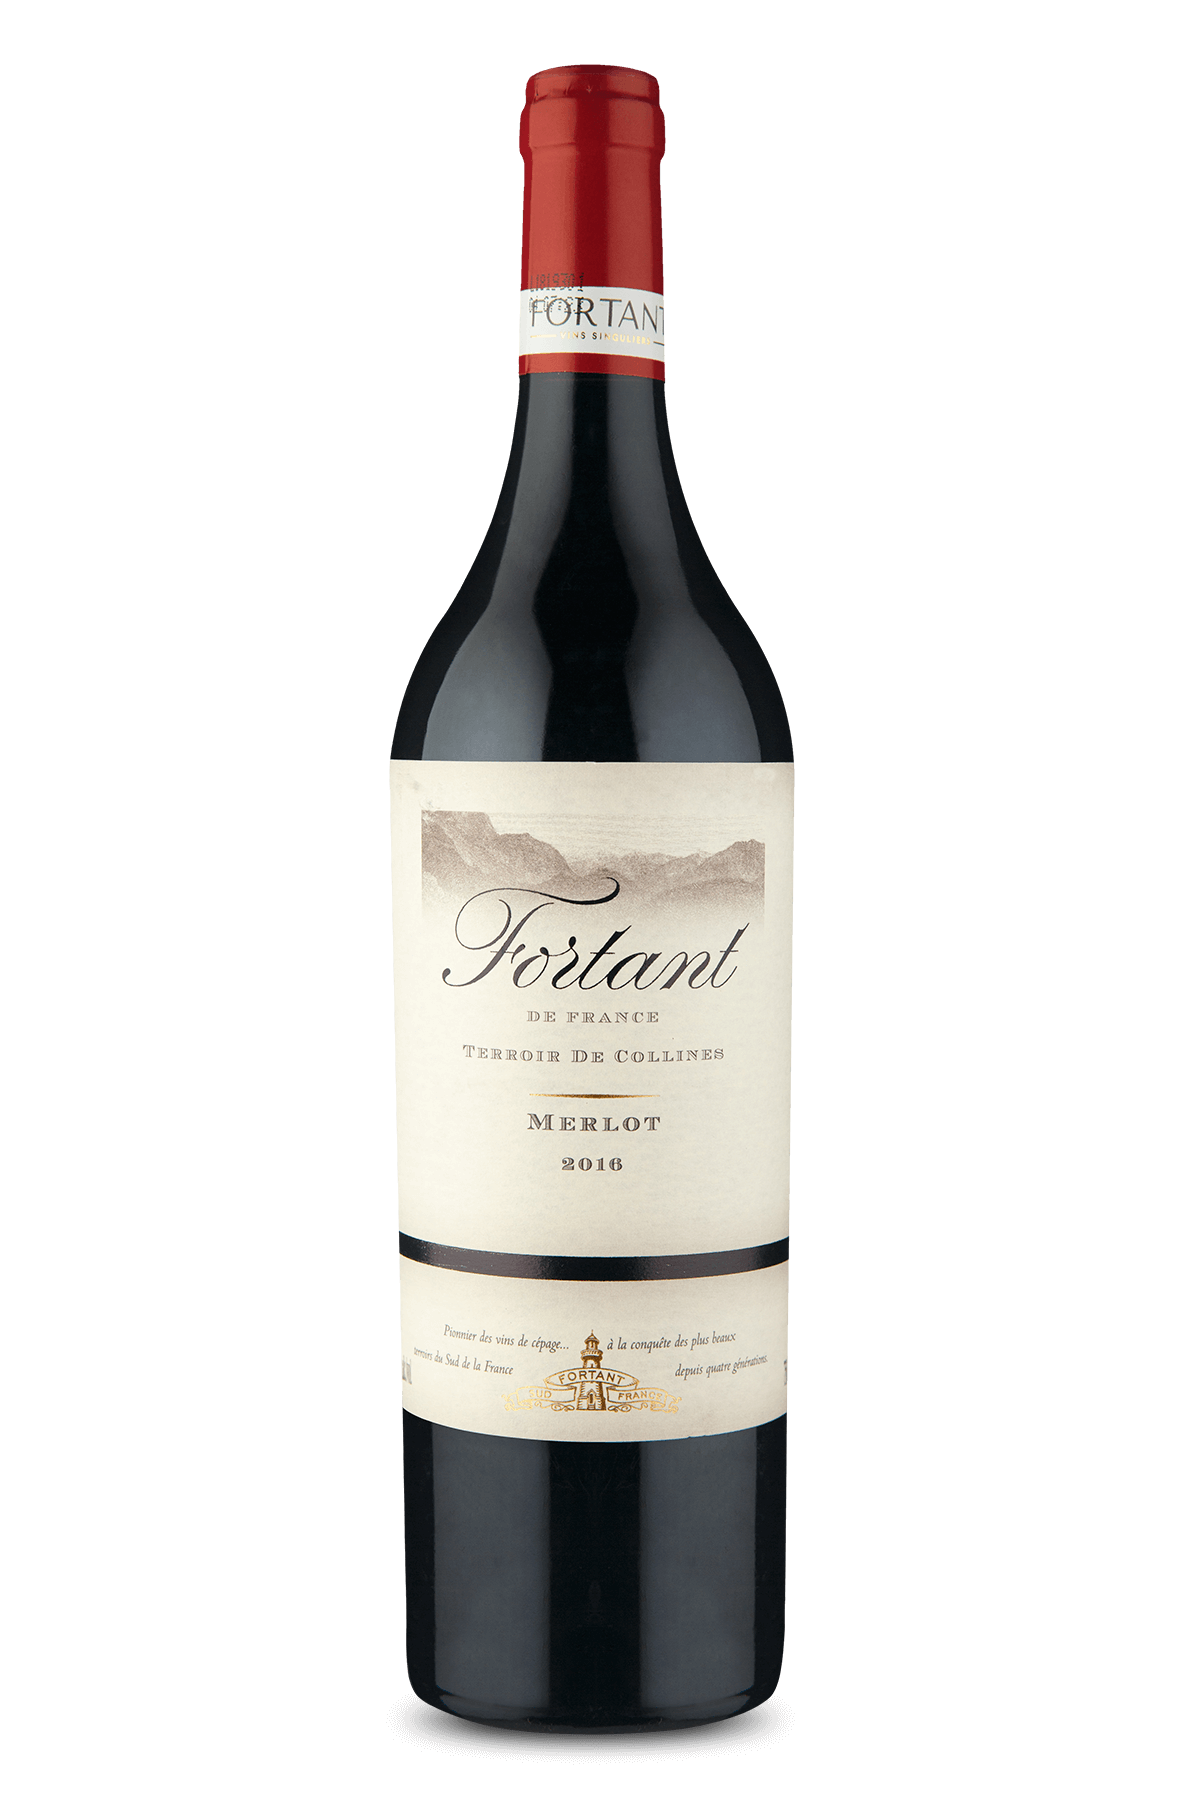 Fortant de France Terroir de Collines Merlot 2016